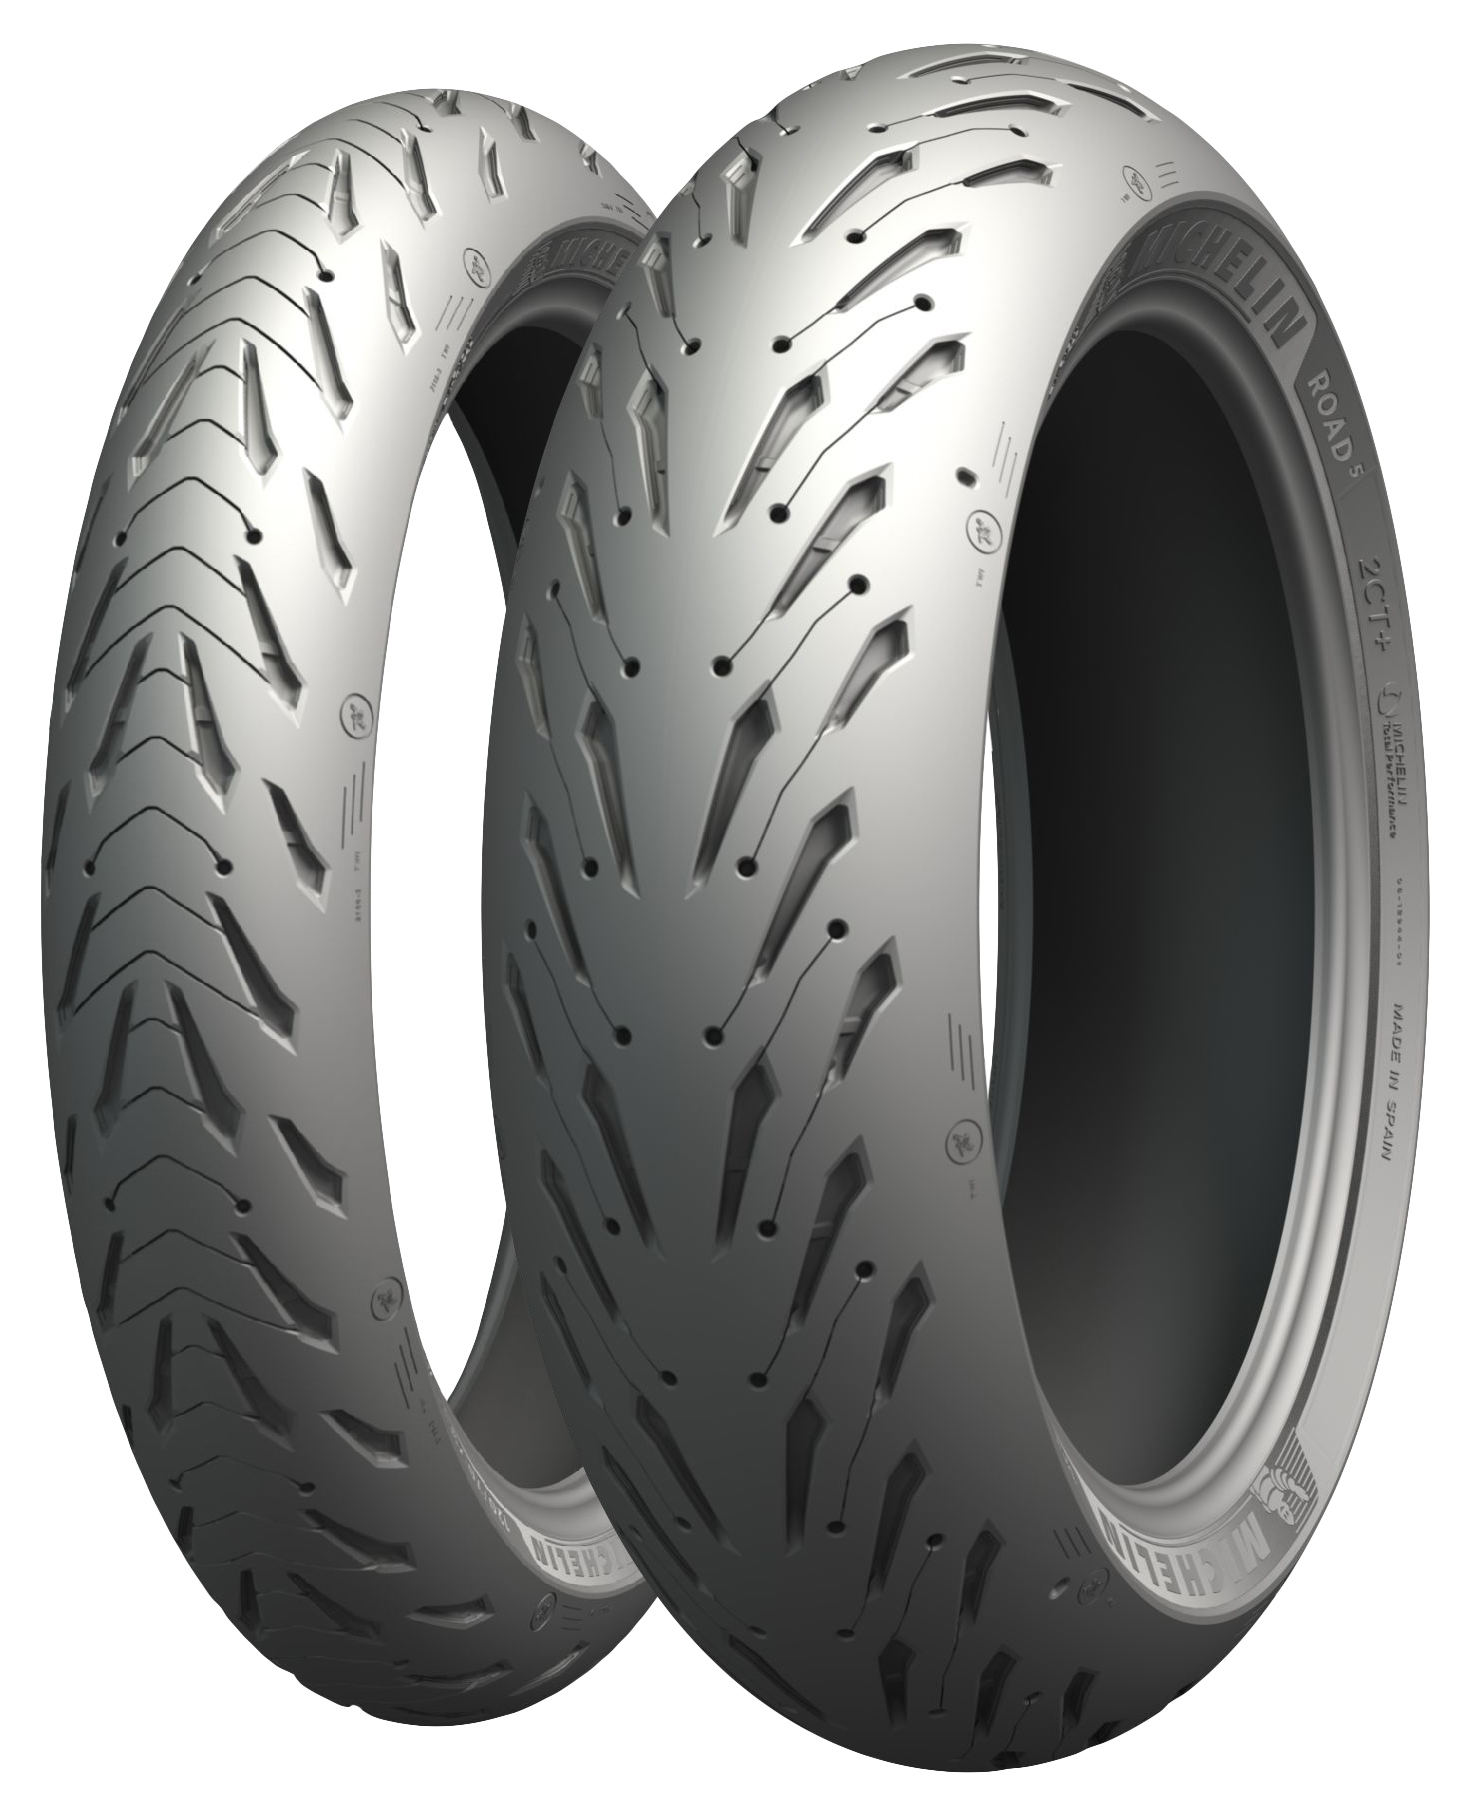 Motorcycle Tire Installation Near Me >> Michelin Road 5 Tires 37 130 63 Off